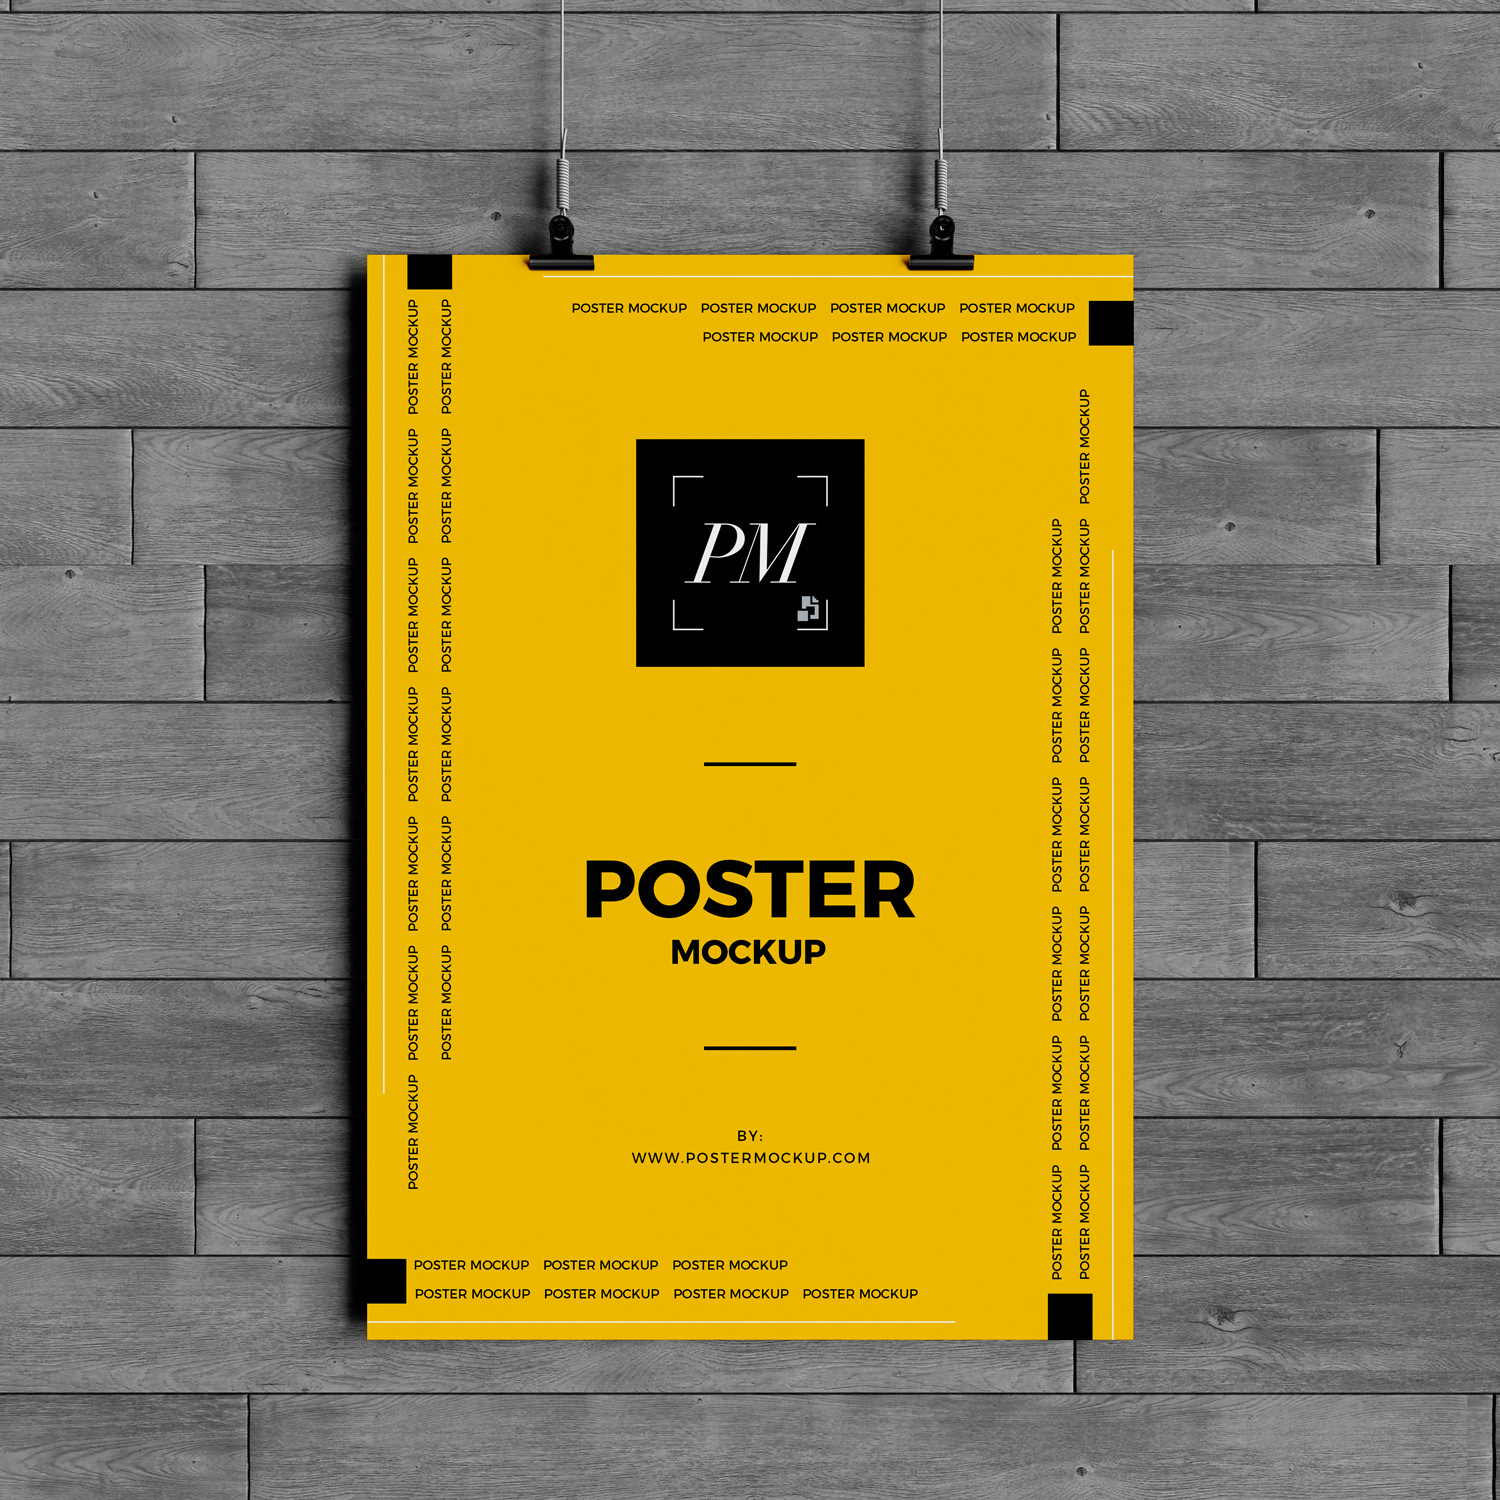 Free-Hanging-Over-Wall-Poster-Mockup-PSD-600